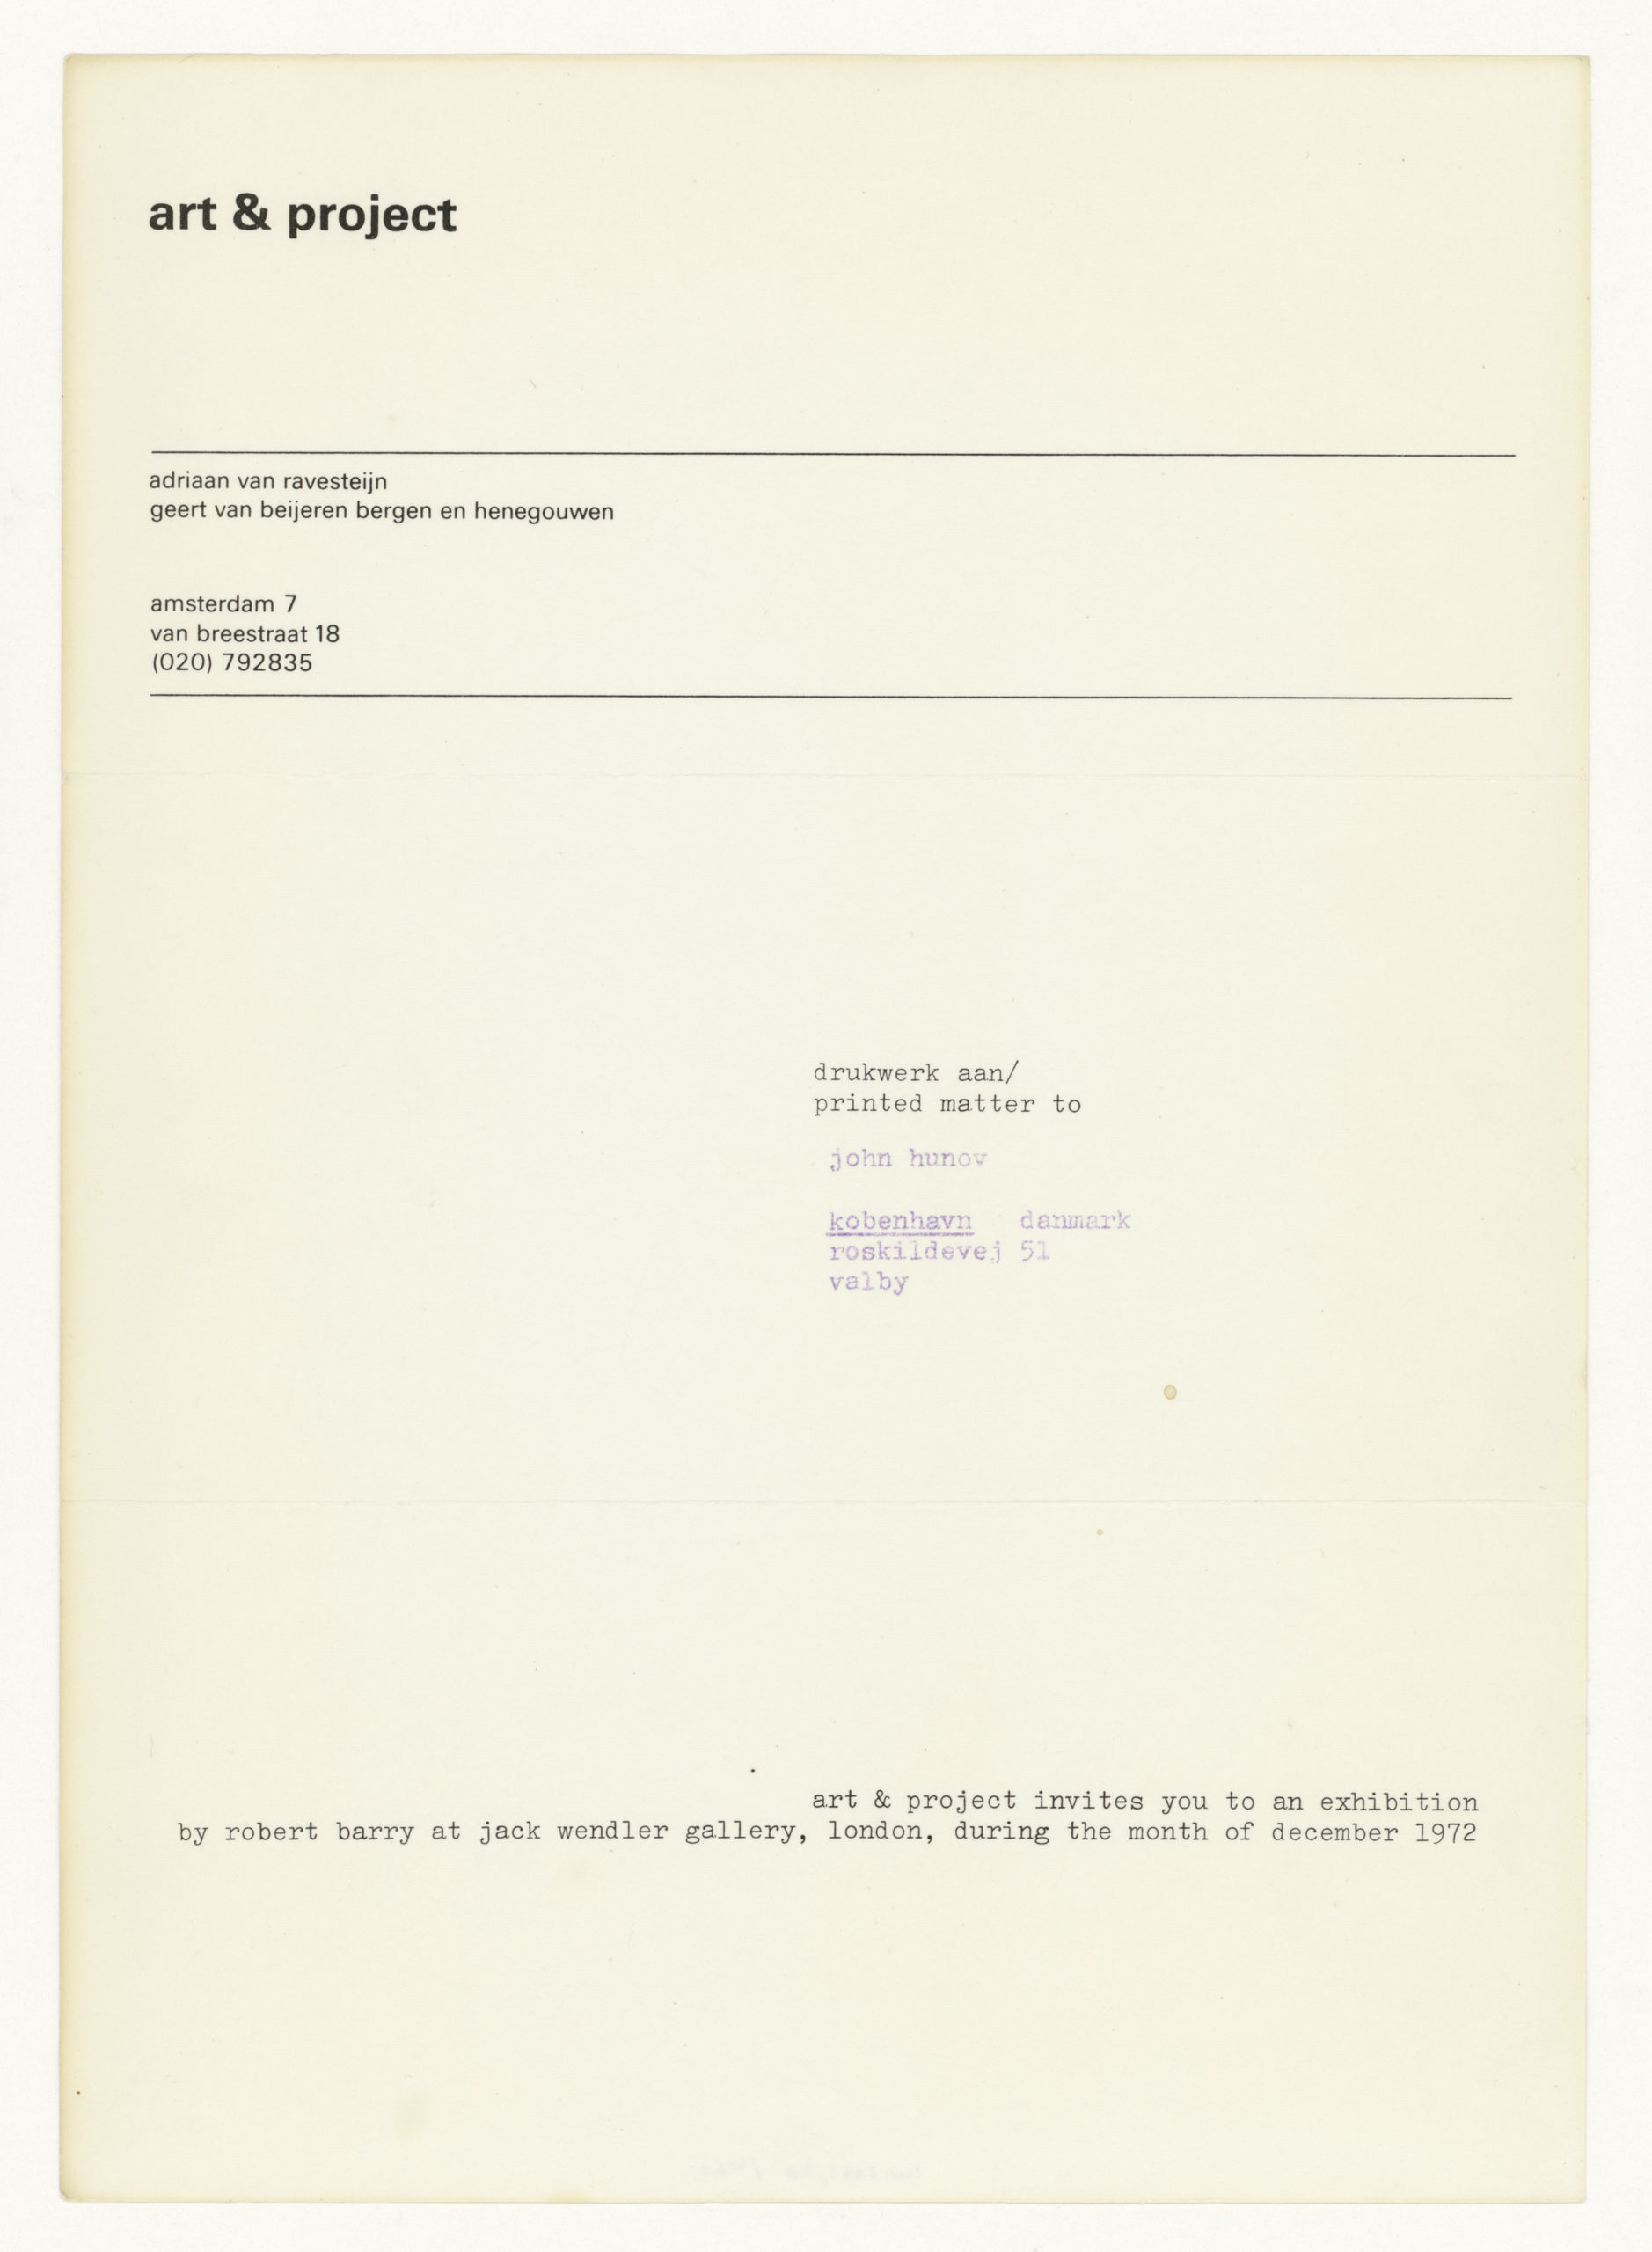 Robert Barry, Invitation Project, art & project, Amsterdam invites to Jack Wendler, London December 1972 (Invitation); Sammlung Marzona, Kunstbibliothek – Staatliche Museen zu Berlin